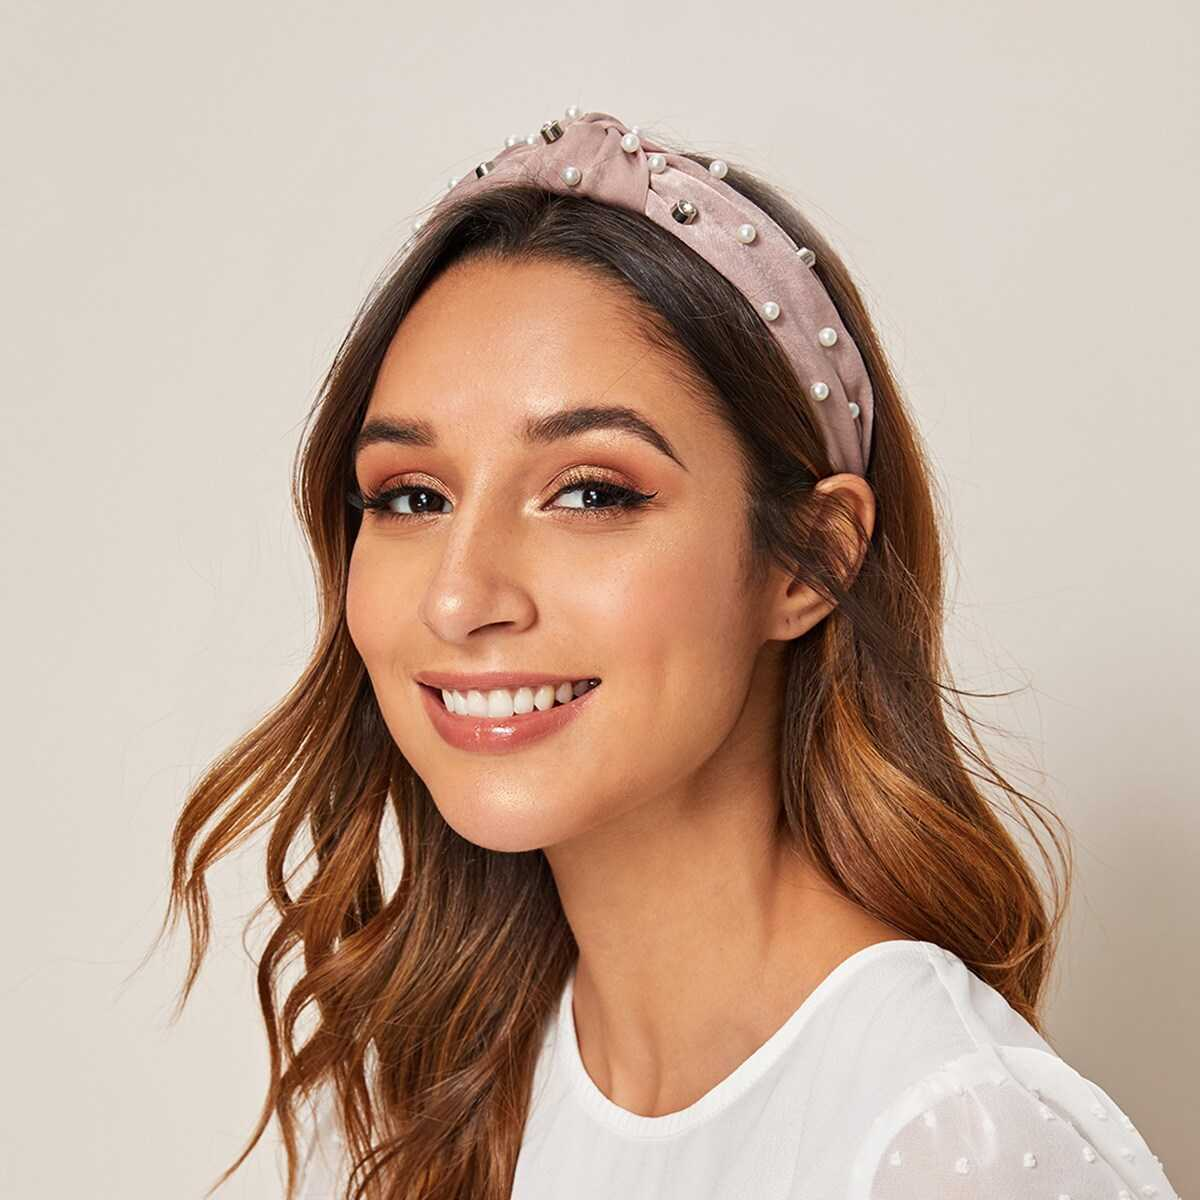 Faux Pearl & Knot Decor Headband in Pink by ROMWE on GOOFASH